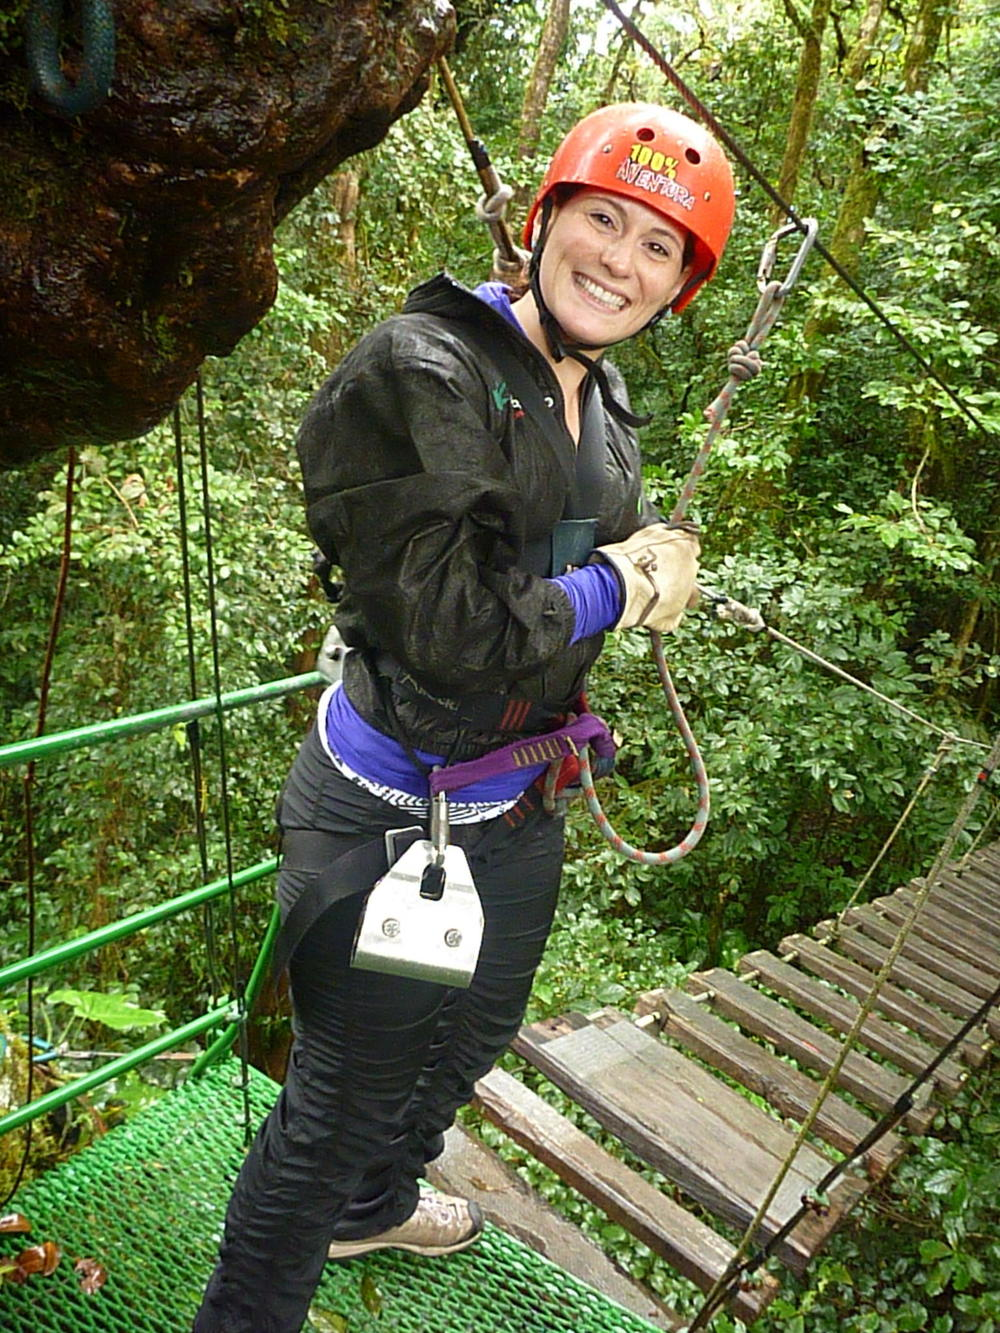 Happy times ziplining; just let the fear pass and relax!